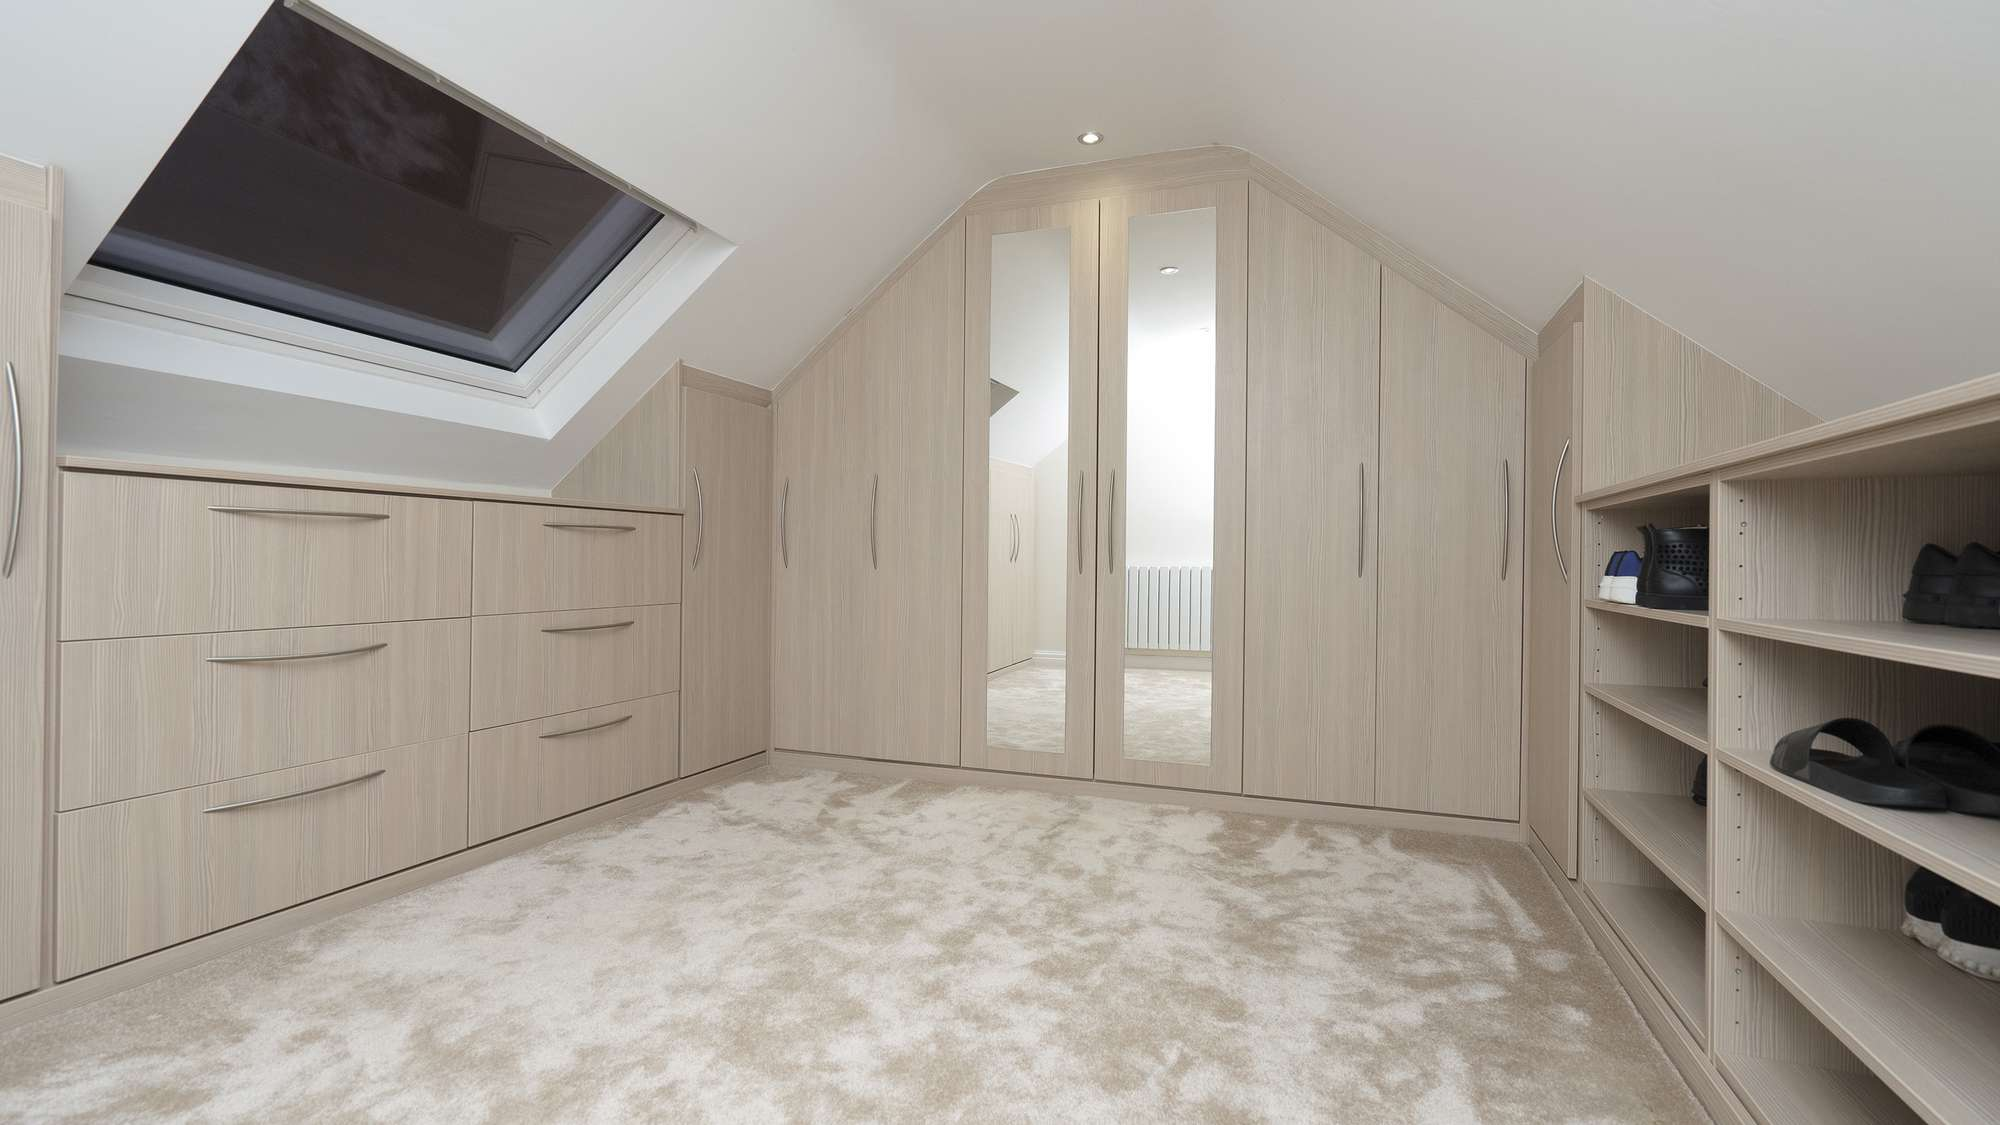 Bespoke loft bedroom furniture, Liverpool